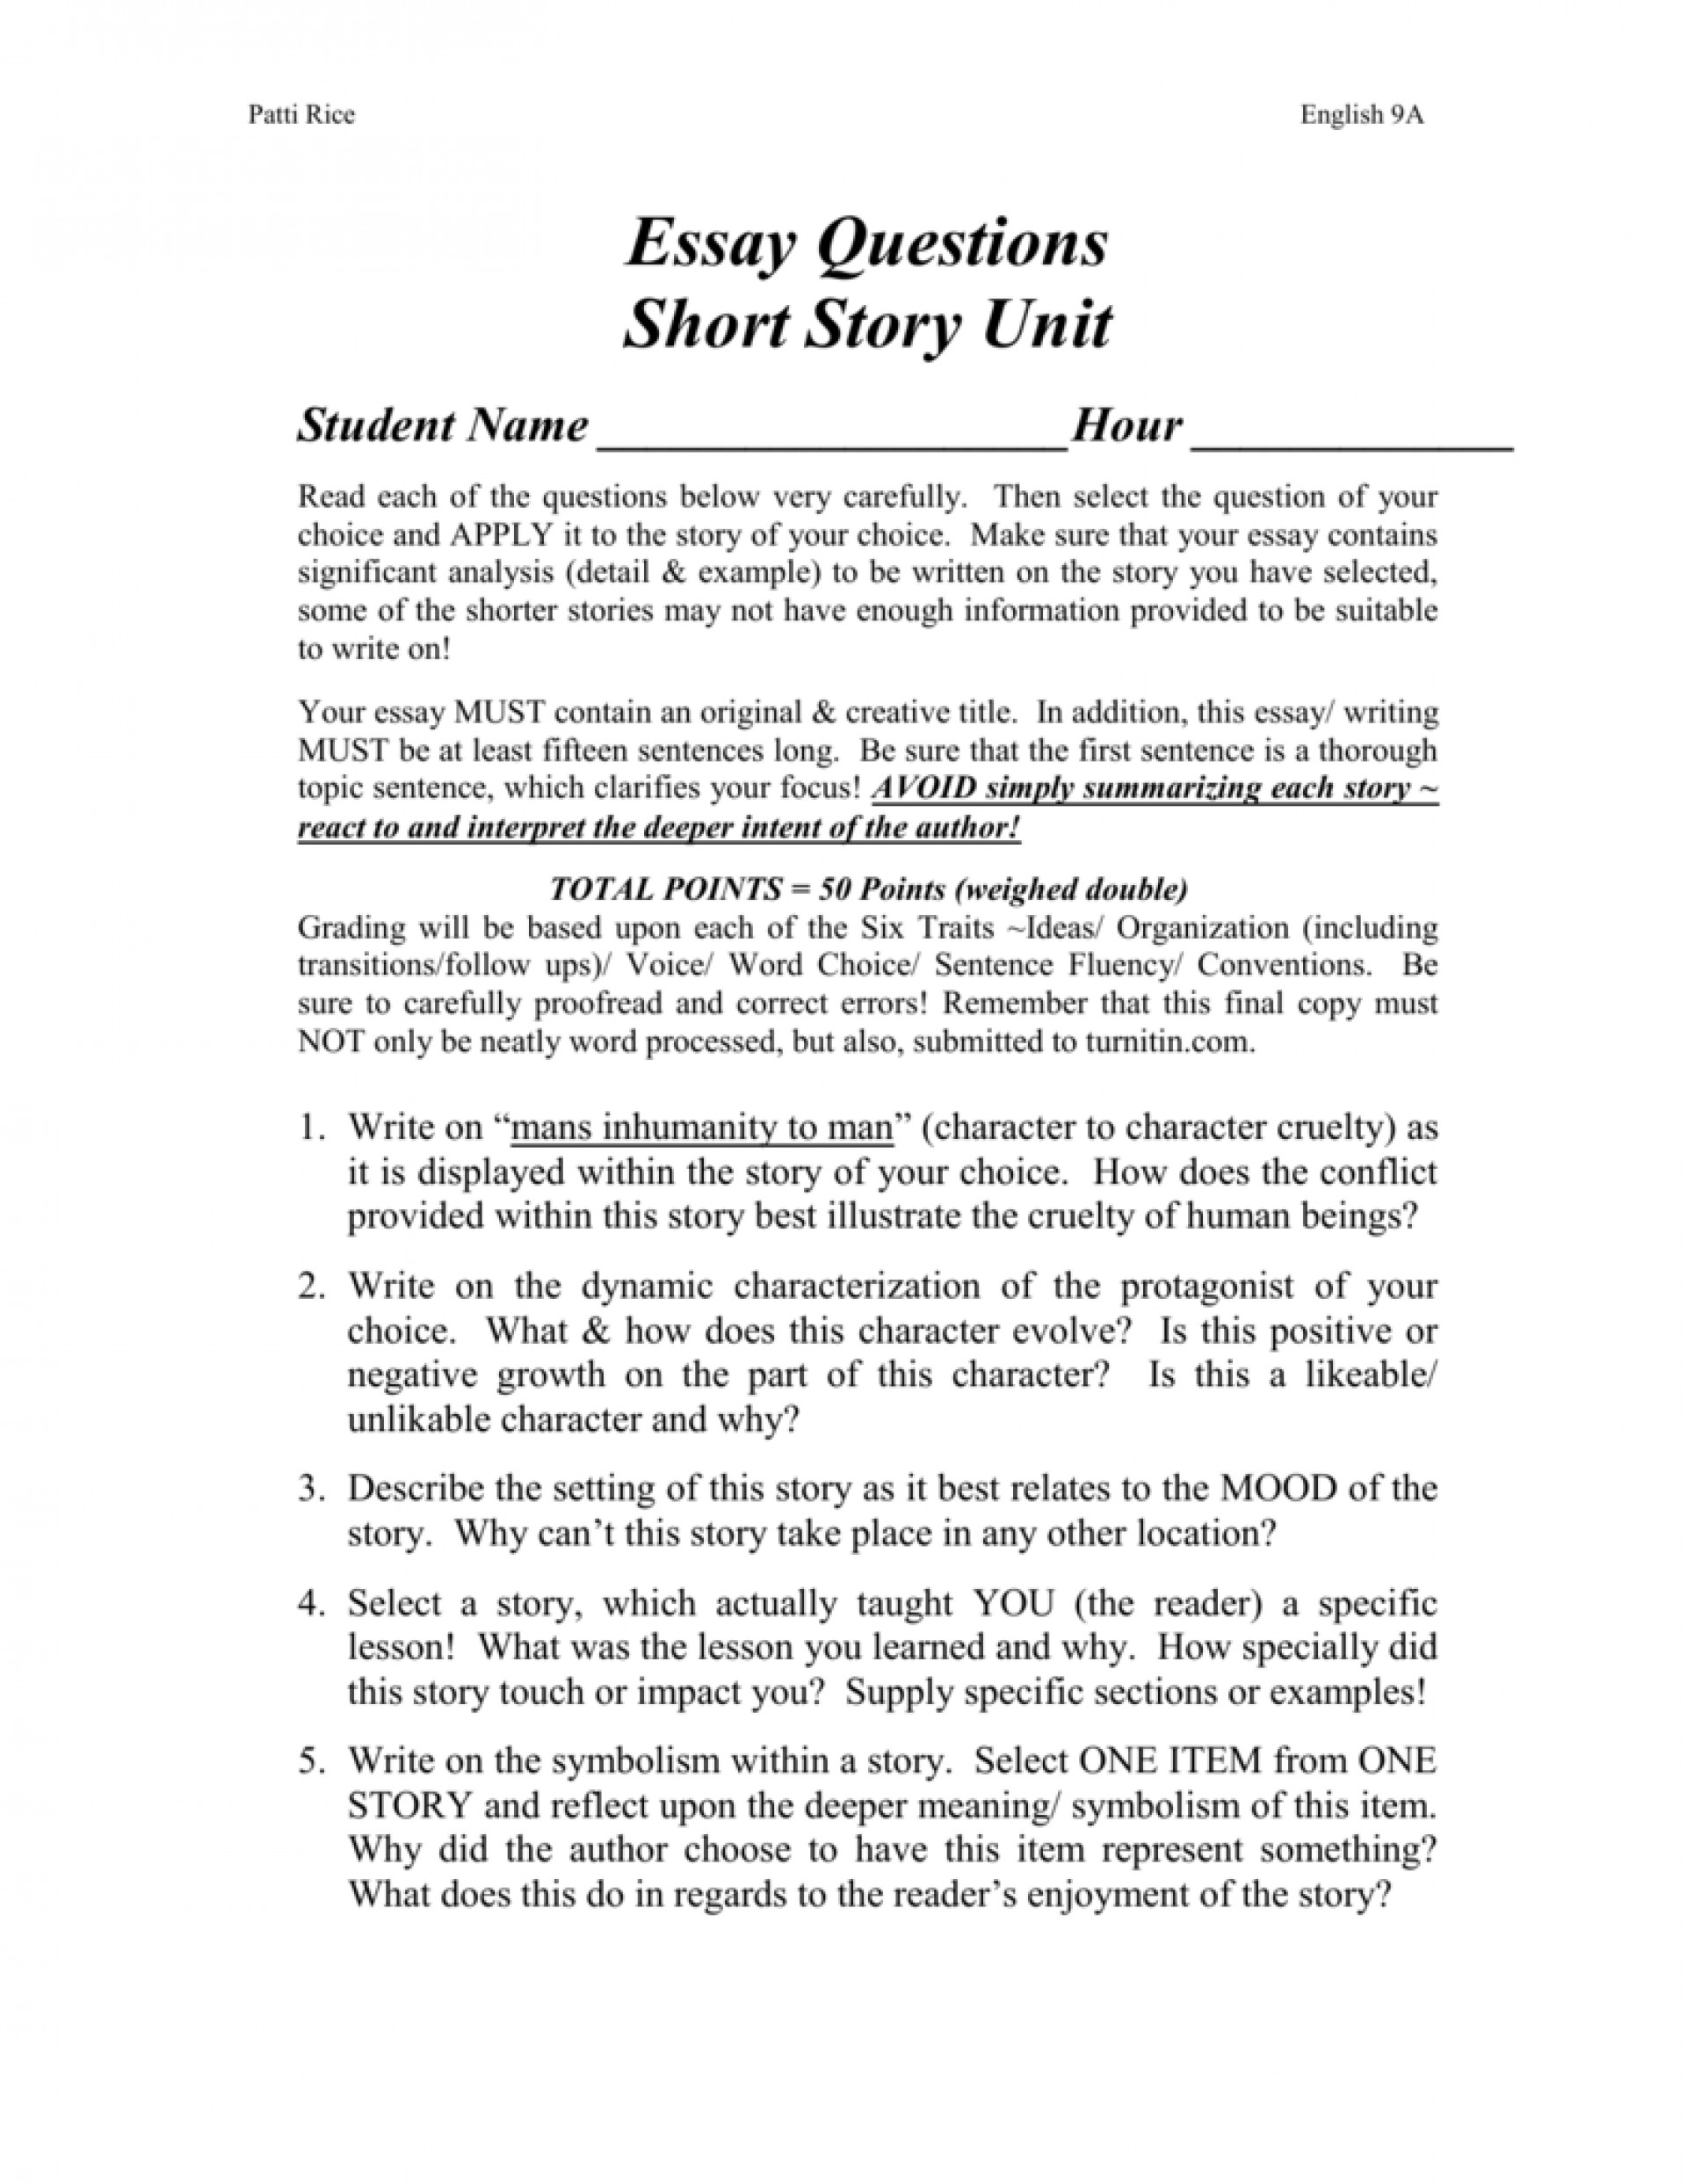 007 008001643 1 Short Stories In Essays Essay Impressive Story Analysis Examples And One Act Plays Fiction 1920